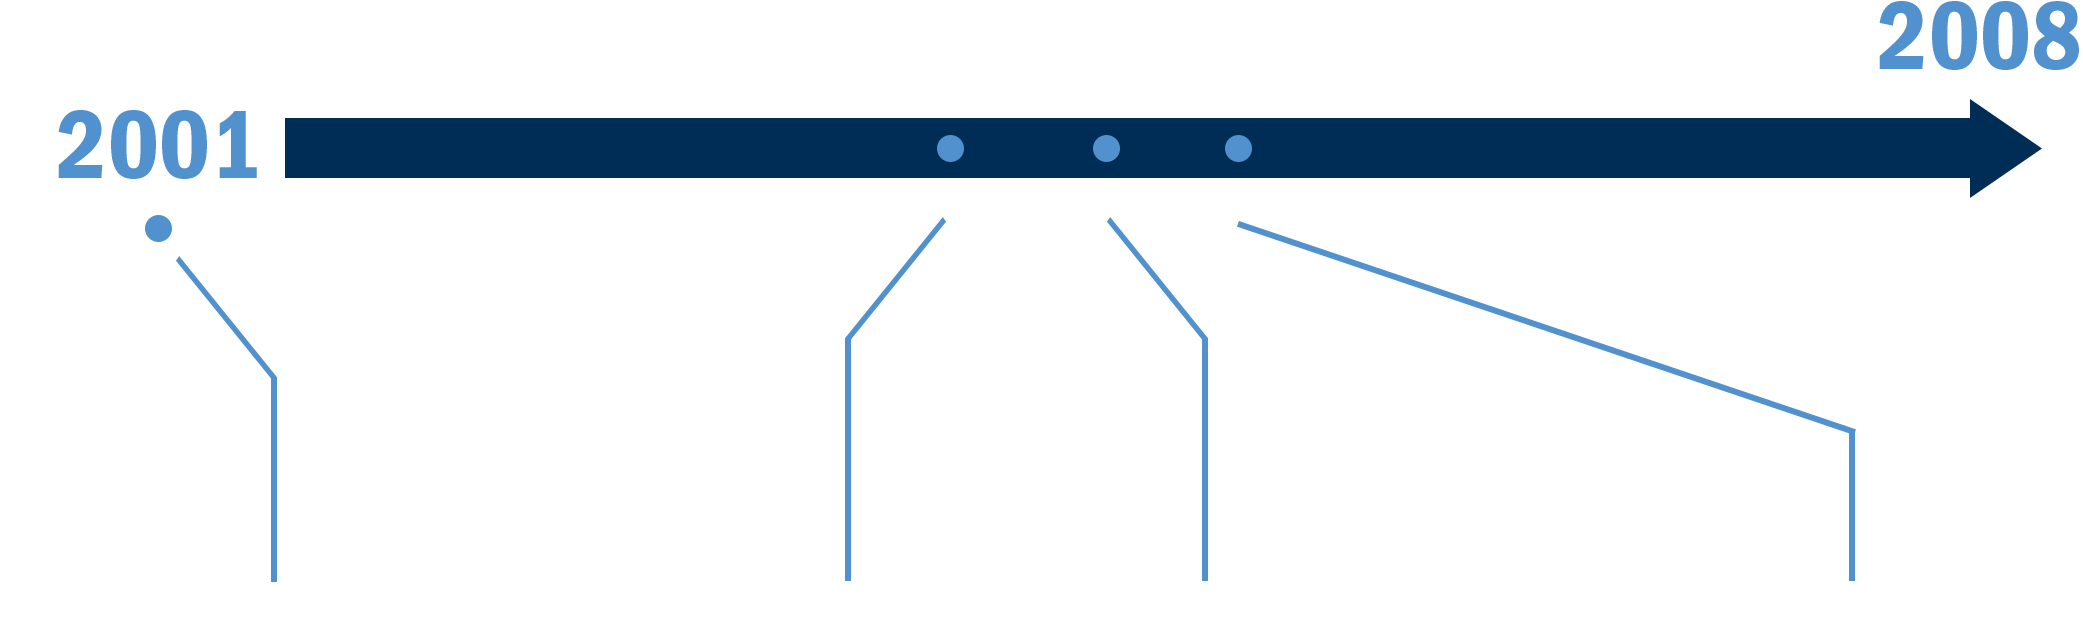 A timeline arrow starting at 2001 and going to 2008